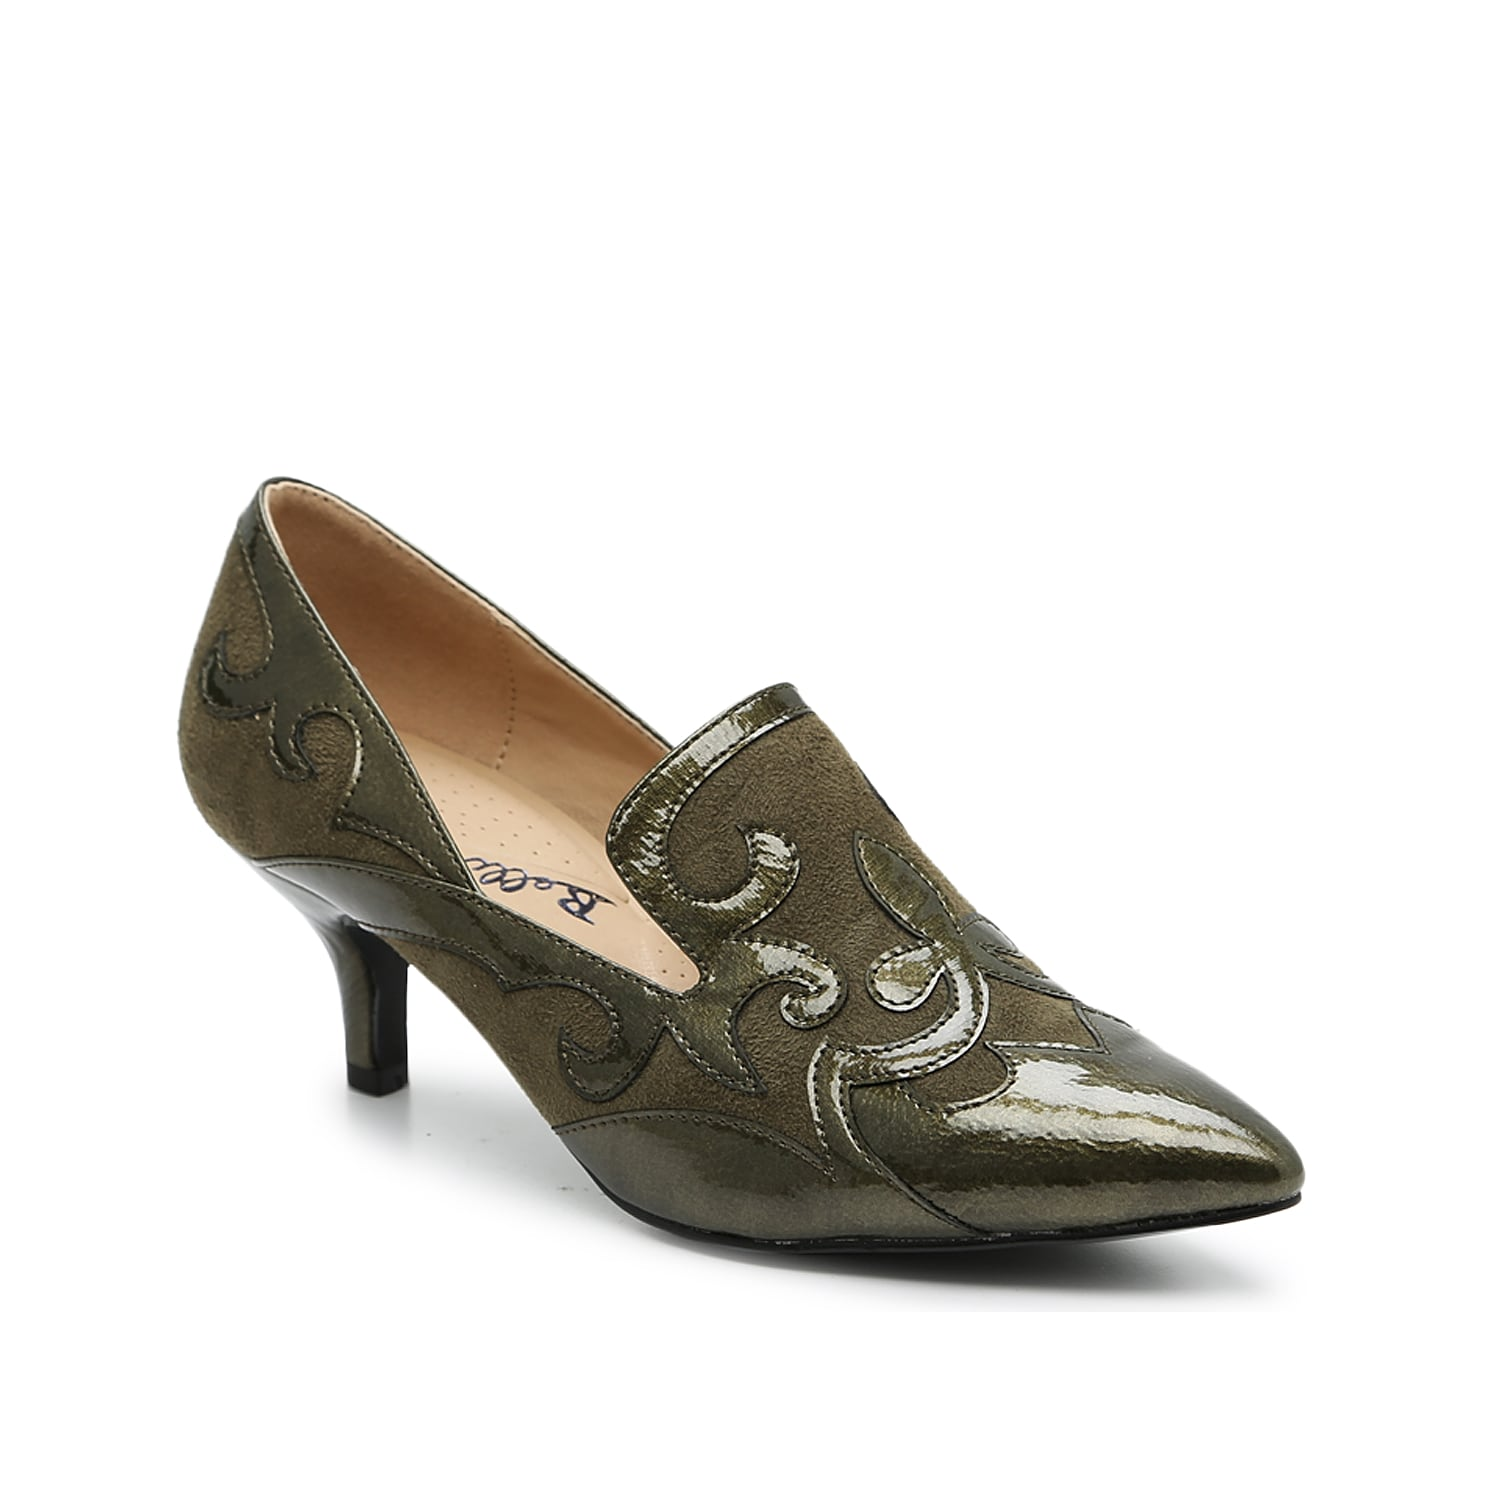 Complement any tailored look with the Bengal pump from Bellini. This pointed toe pair features a loafer-inspired vamp and kitten heel for trendy appeal.